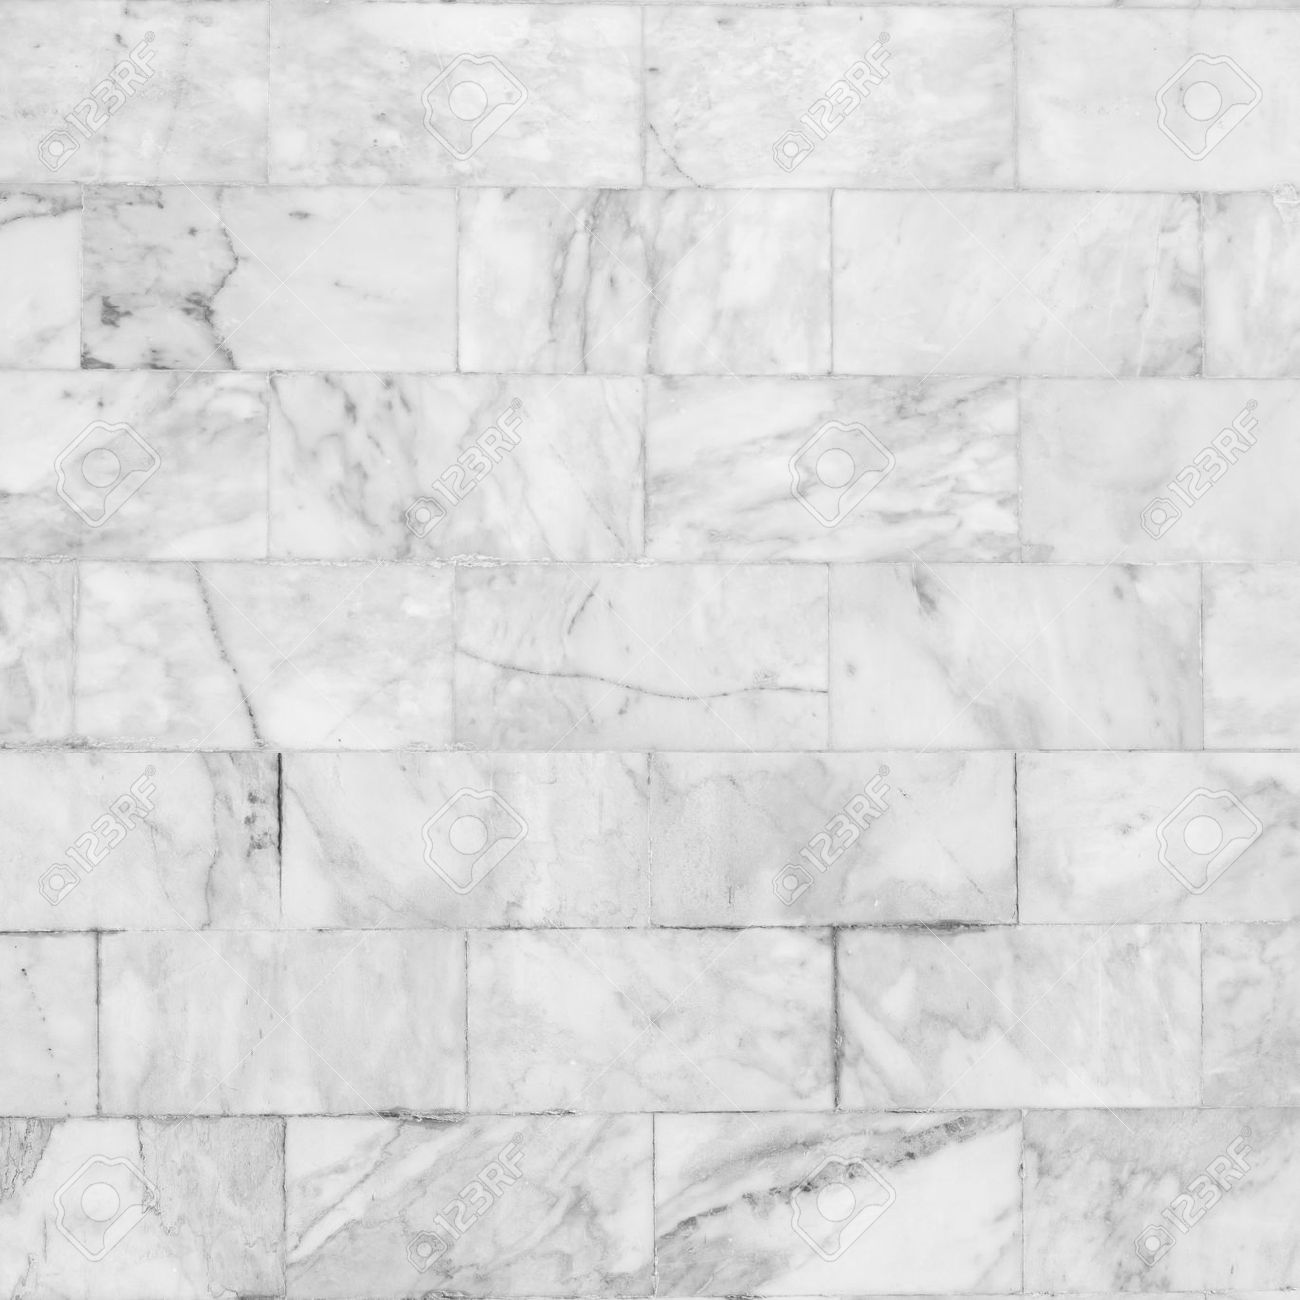 white marble tile texture. Stock Photo - White Marble Tiles Seamless Flooring Texture, Detailed  Structure Of In Natural Patterned For Background And Design. White Tile Texture T